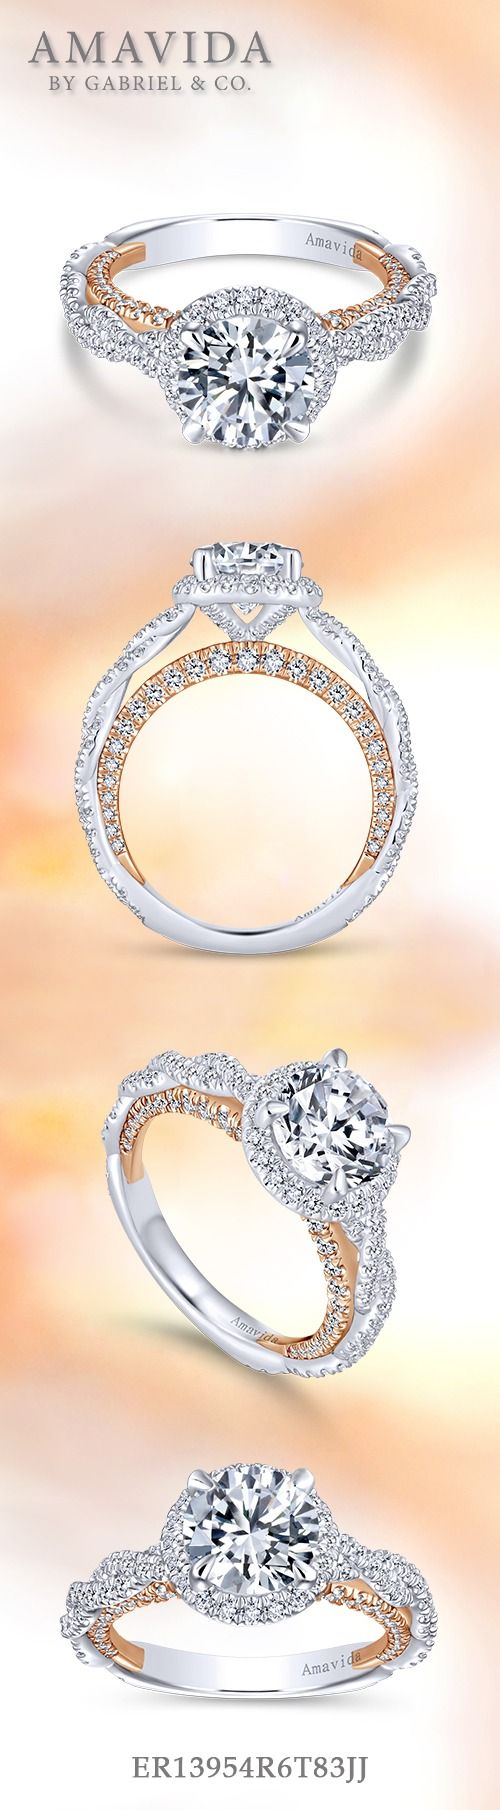 Gabriel & Co.-Voted #1 Most Preferred Fine Jewelry and Bridal Brand. 18k White / Rose Gold Round Halo  Engagement Ring